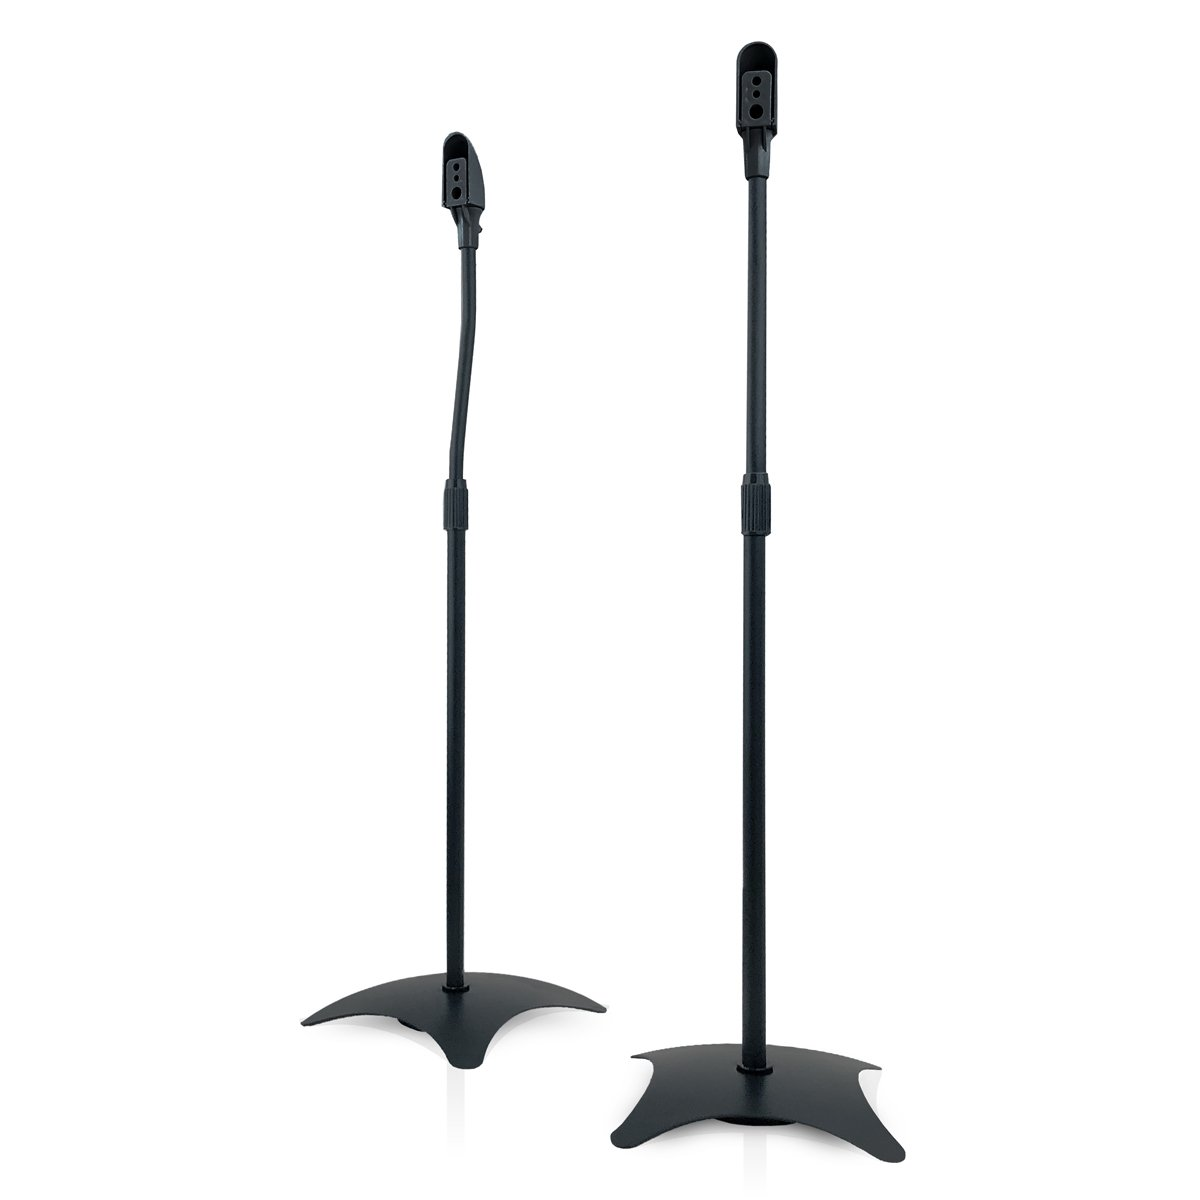 9HORN Pair of Metal Speaker Stands Height Adjustable (Black, 1 Pair) by 9HORN